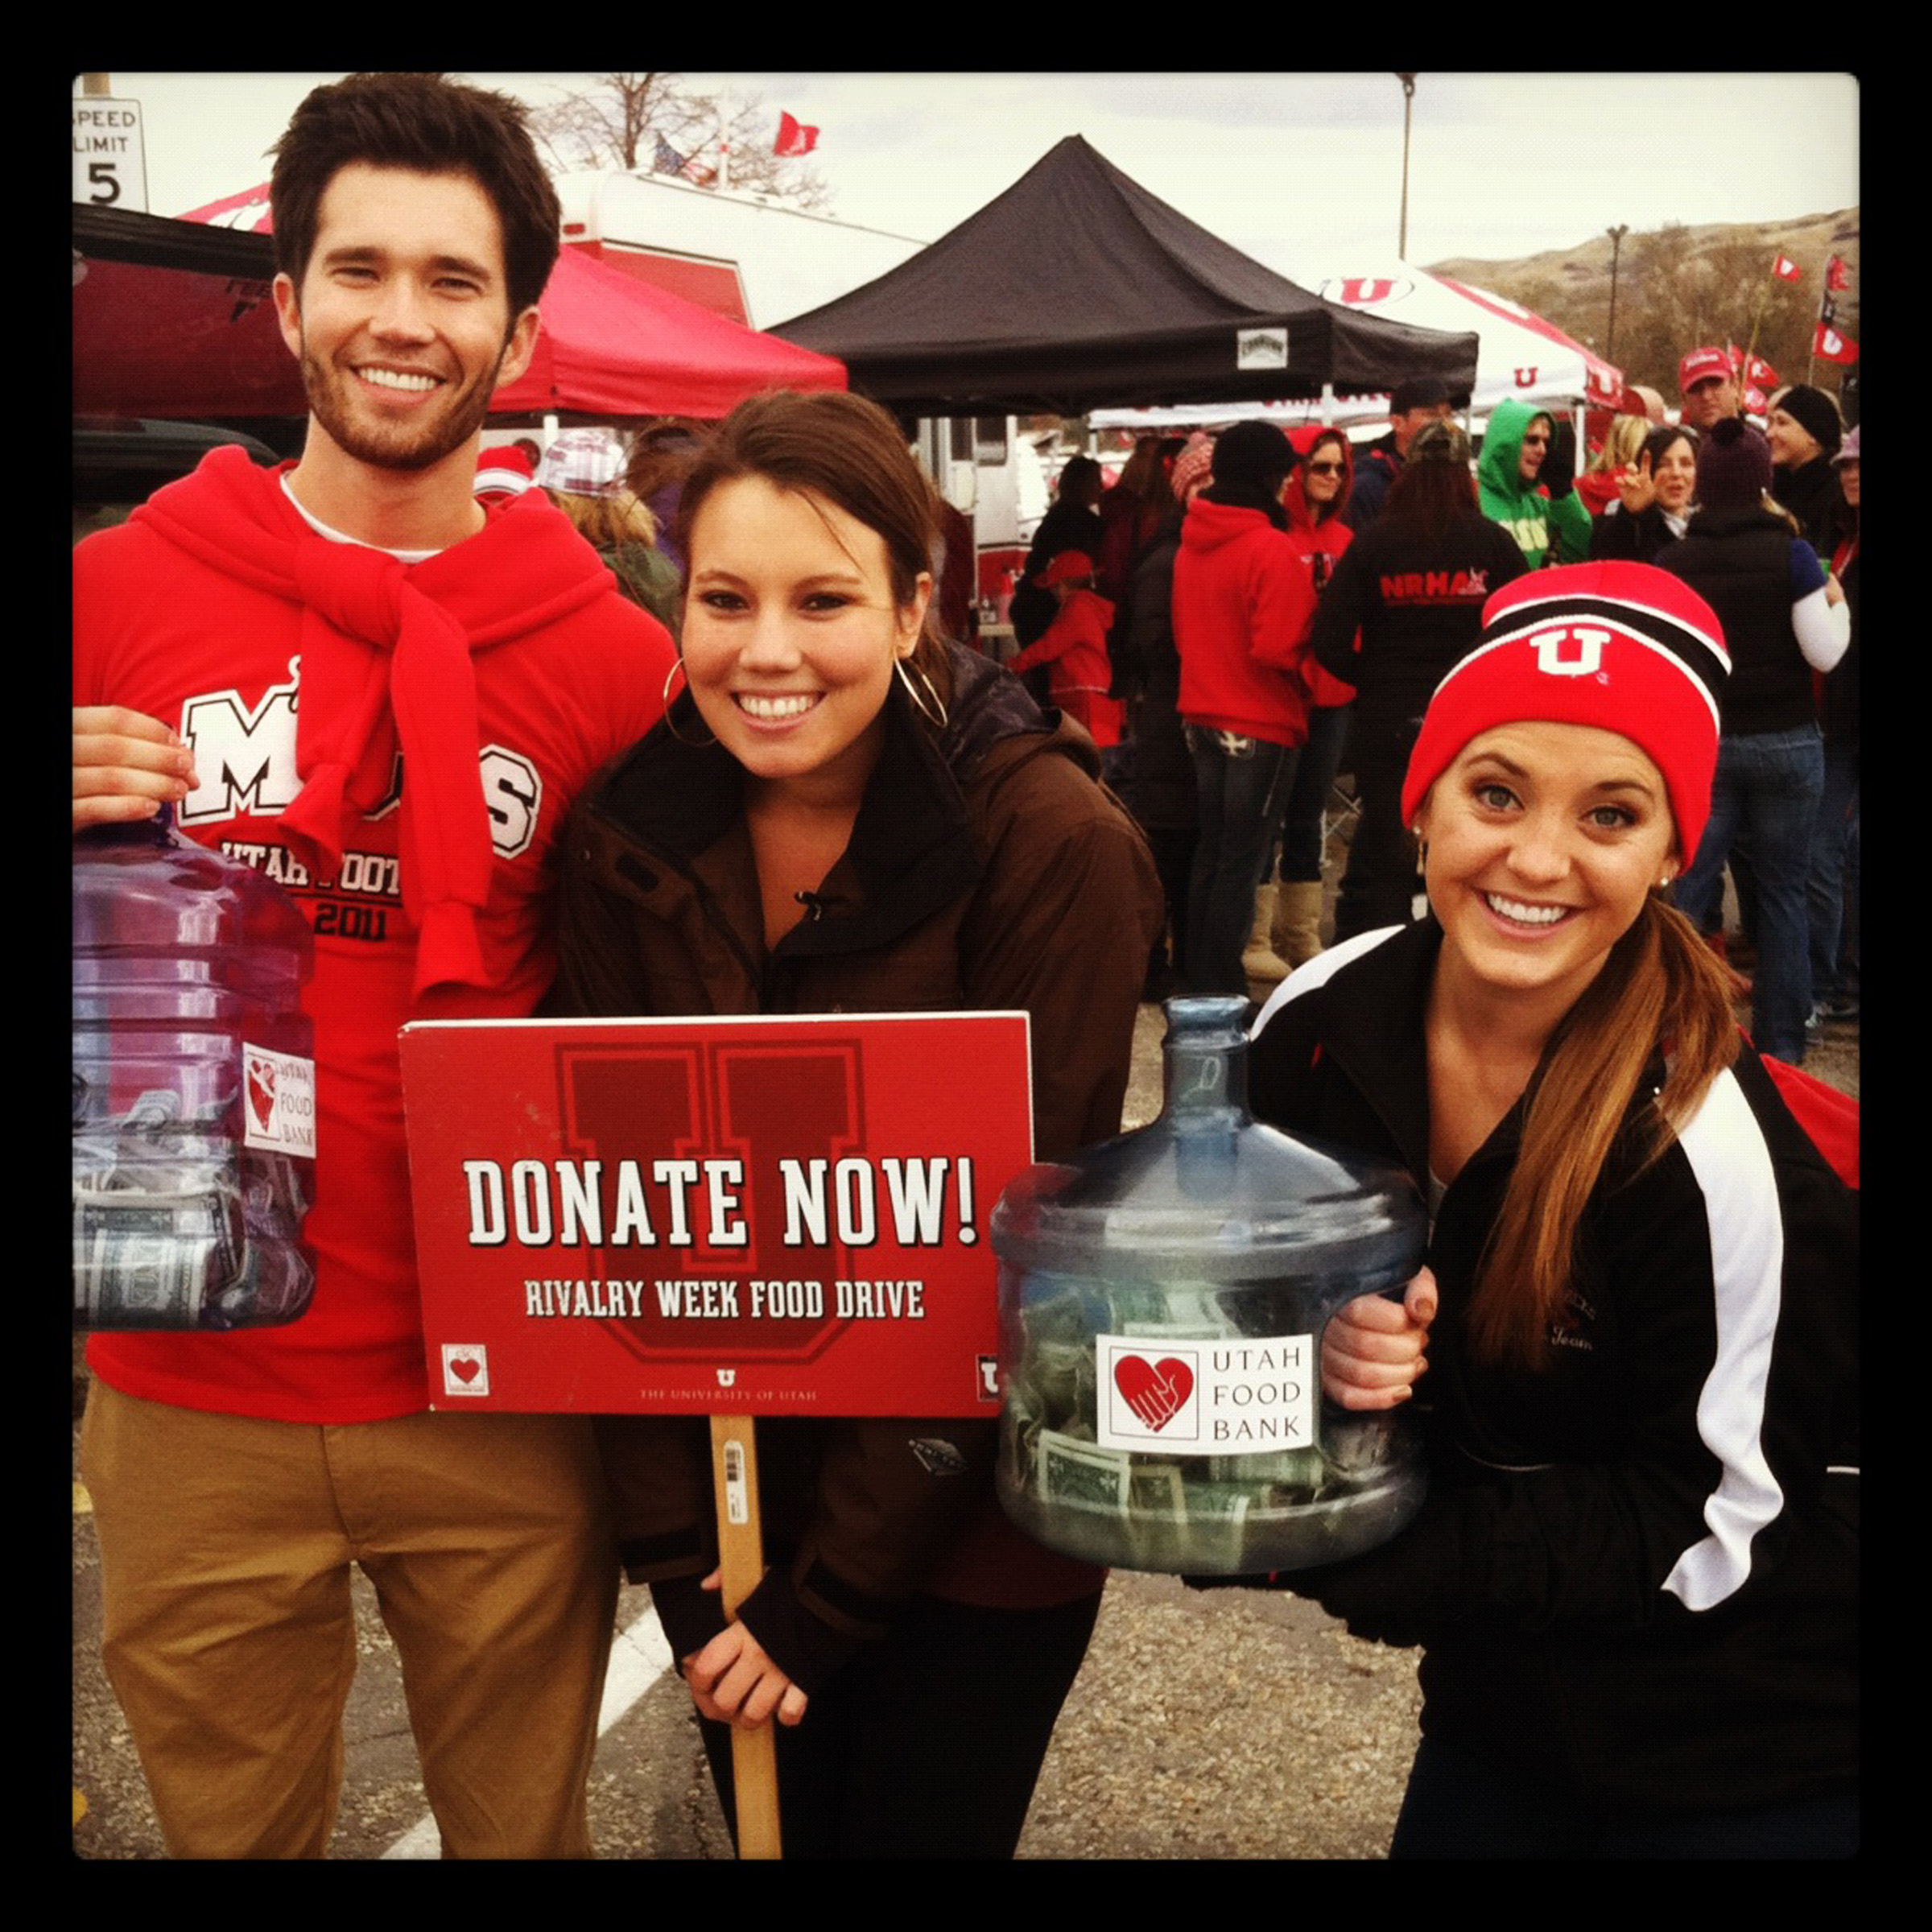 U students collecting donations in 2011.